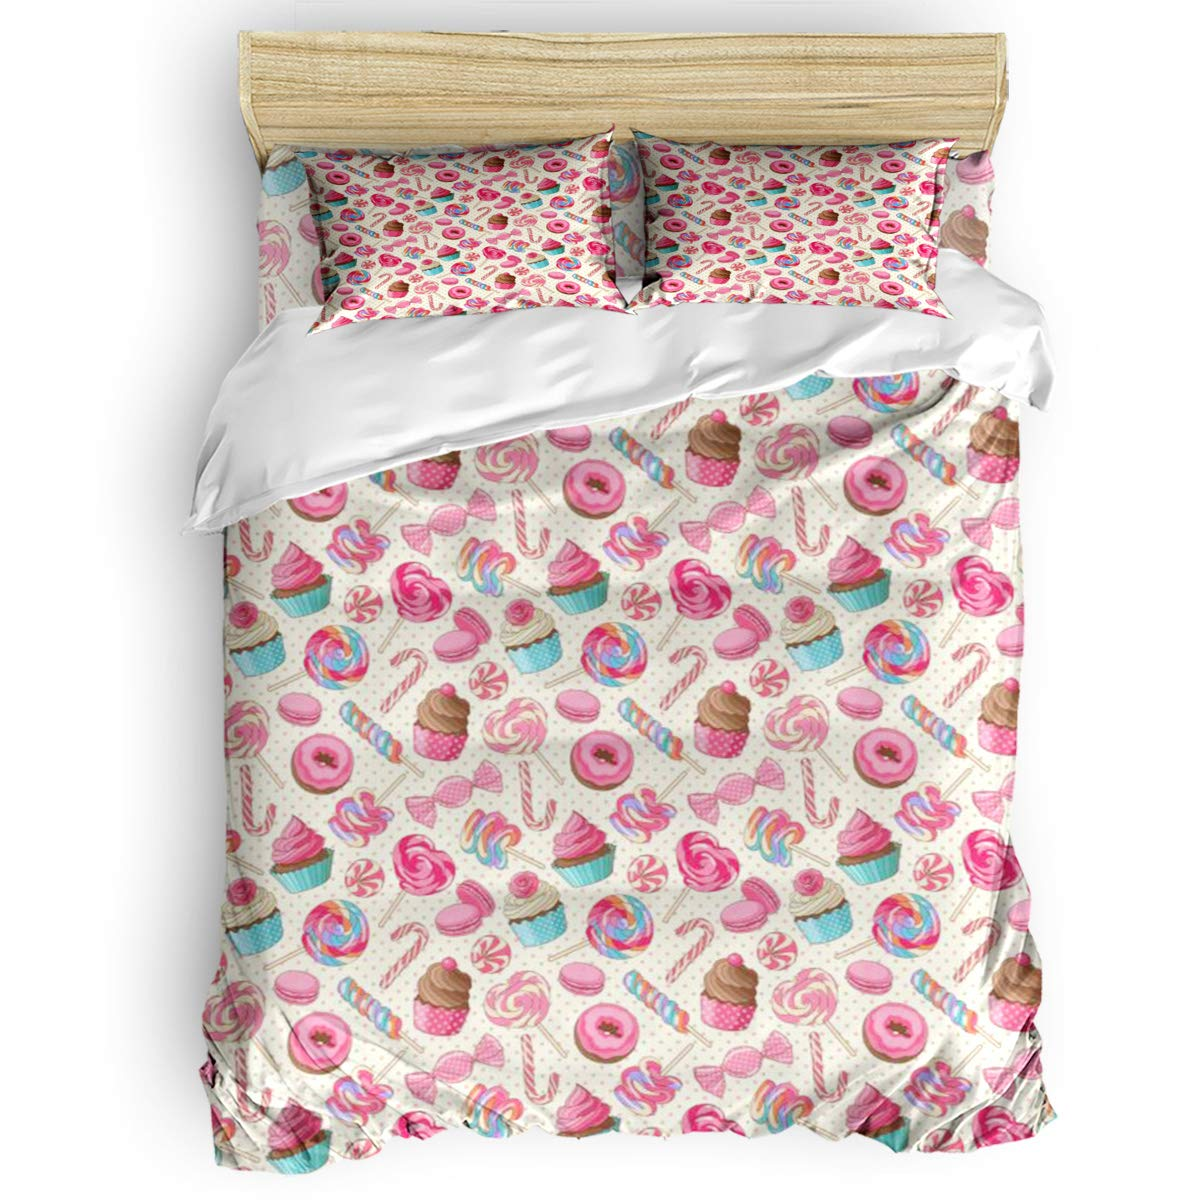 Candy Cane Bedding Duvet Cover 4 Piece Set, Yummy Sweet Lollipop Candy Macaroon Cupcake and Donut on Polka Dots Pattern, Hypoallergenic Microfiber Comforter Cover Bedspread and 2 Pillow Cases - Twin by Family Decor